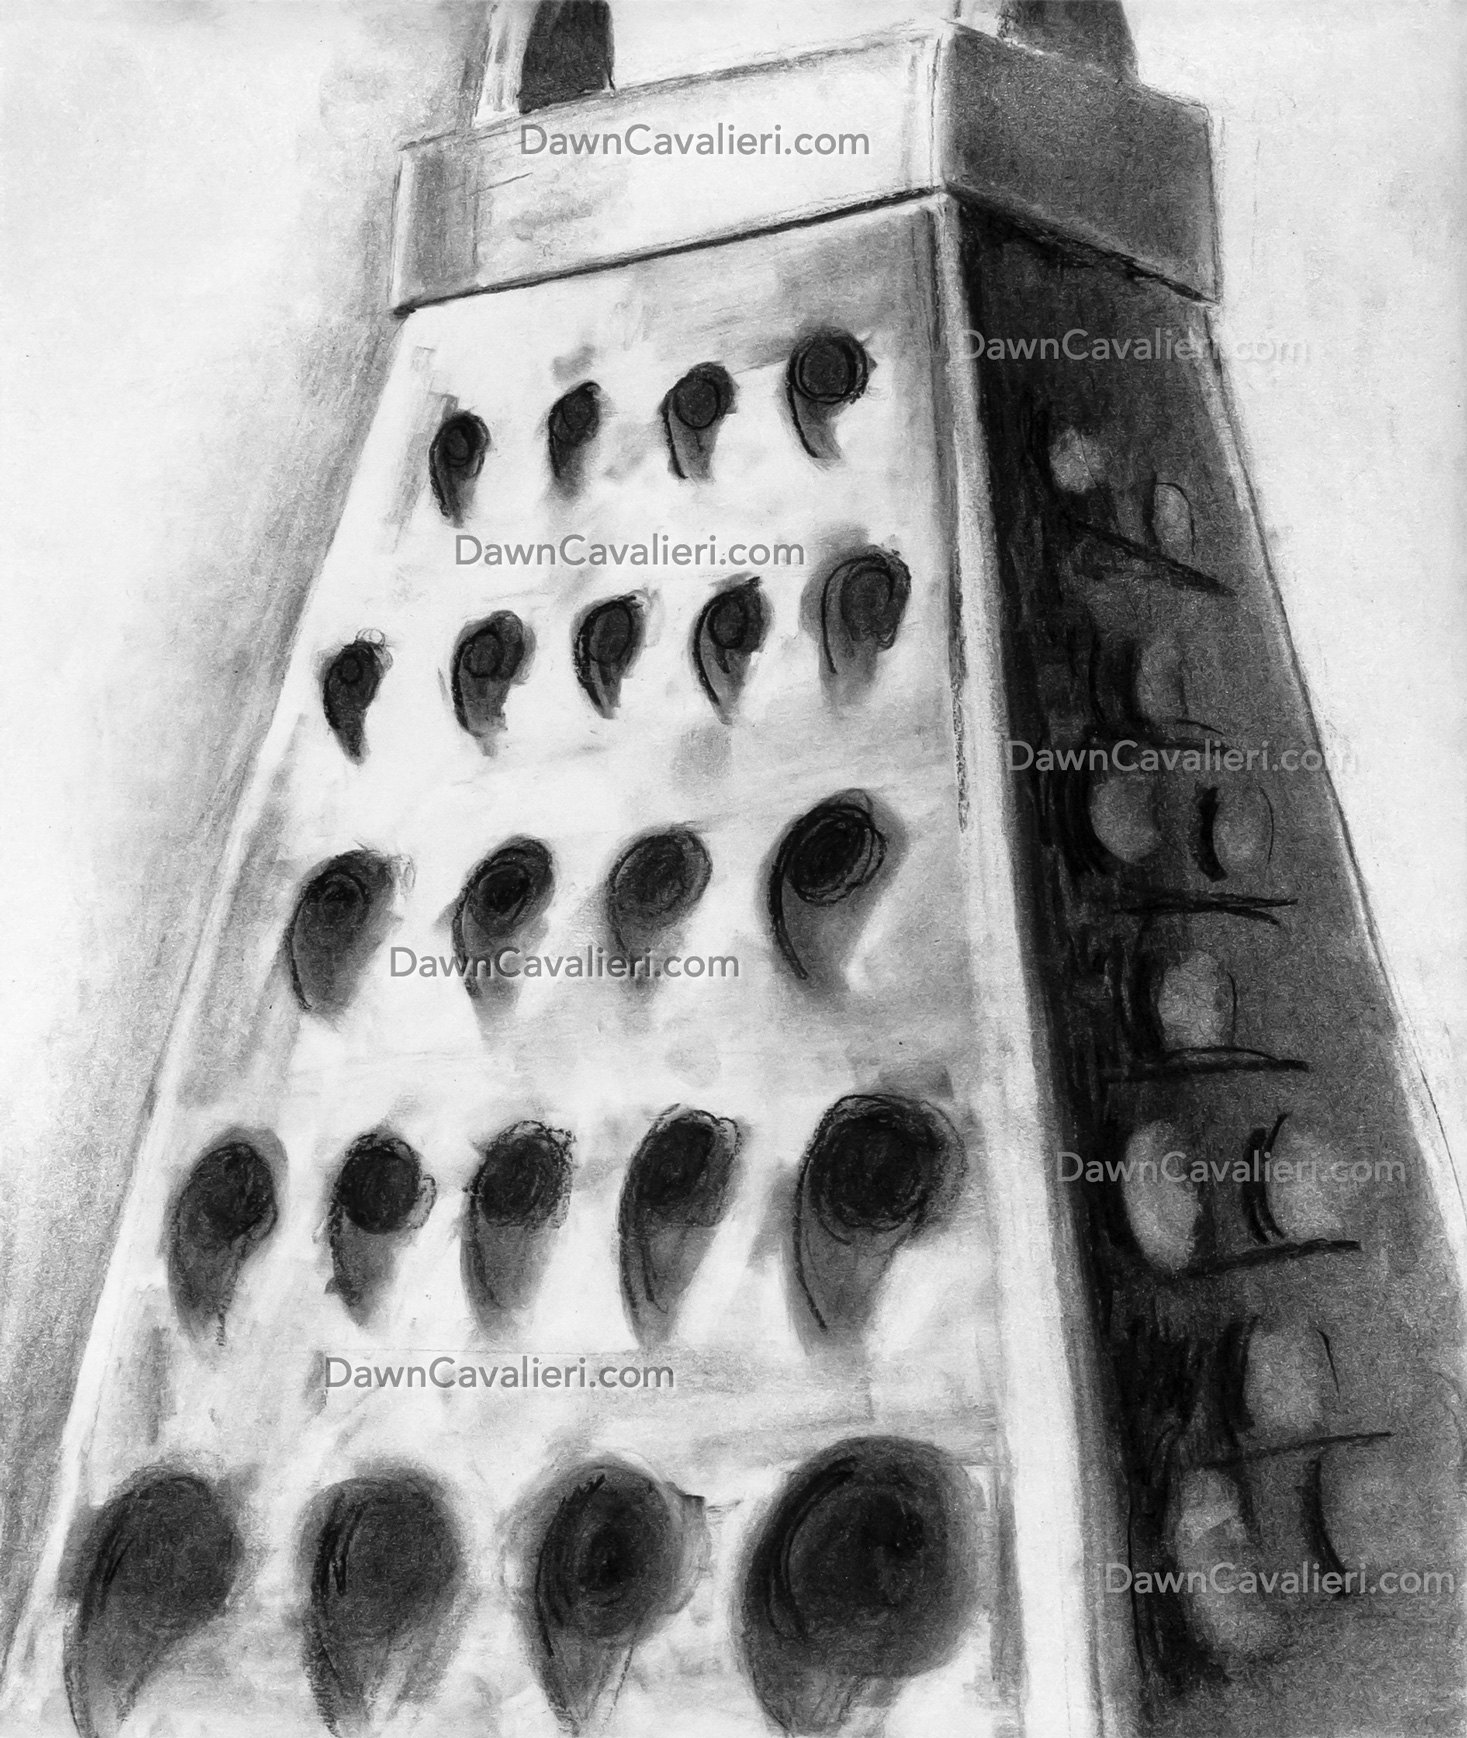 Three-point perspective drawing of a grater, by Dawn Cavalieri.